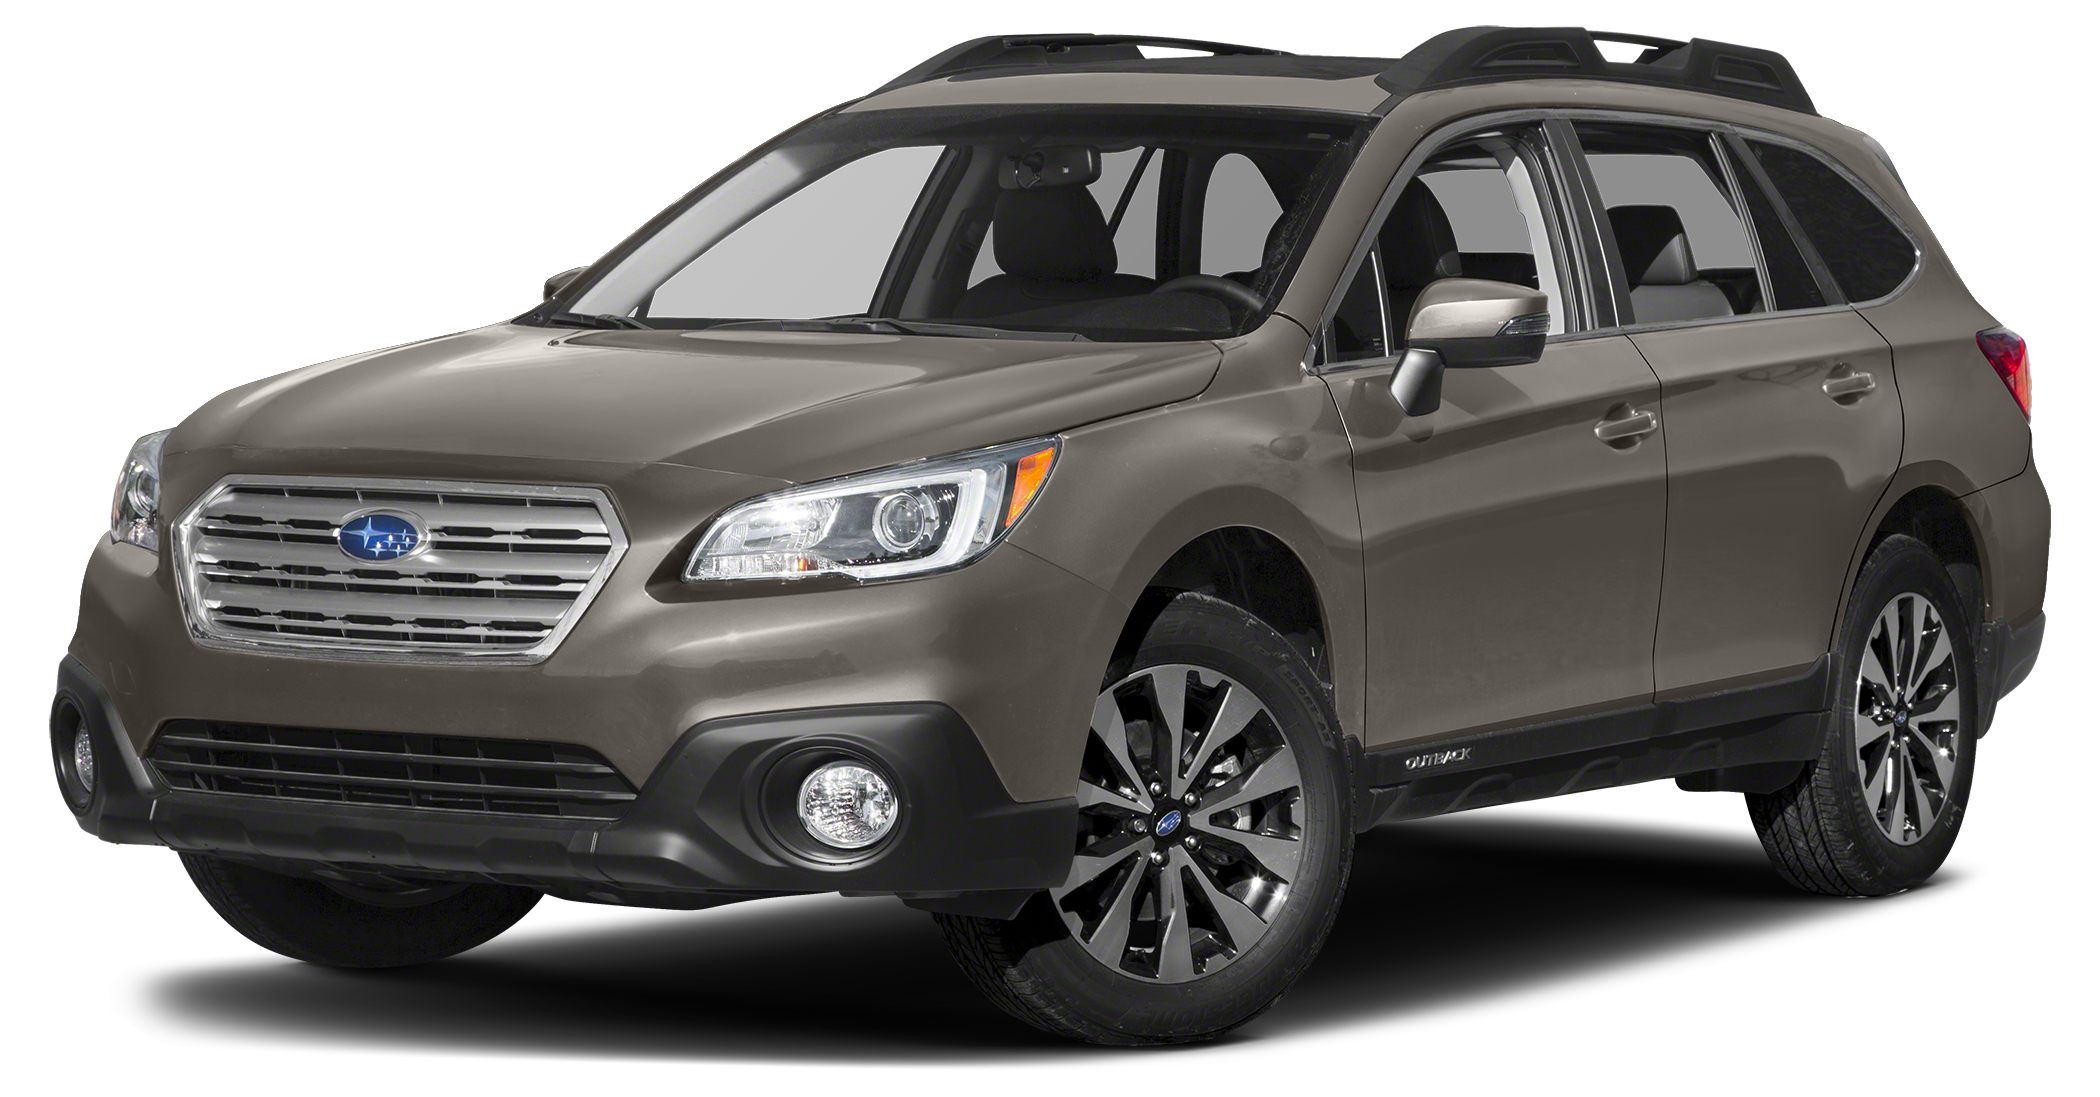 2017 Subaru Outback 25i Limited Miles 5Color Tungsten Metallic Stock SH307177 VIN 4S4BSANC3